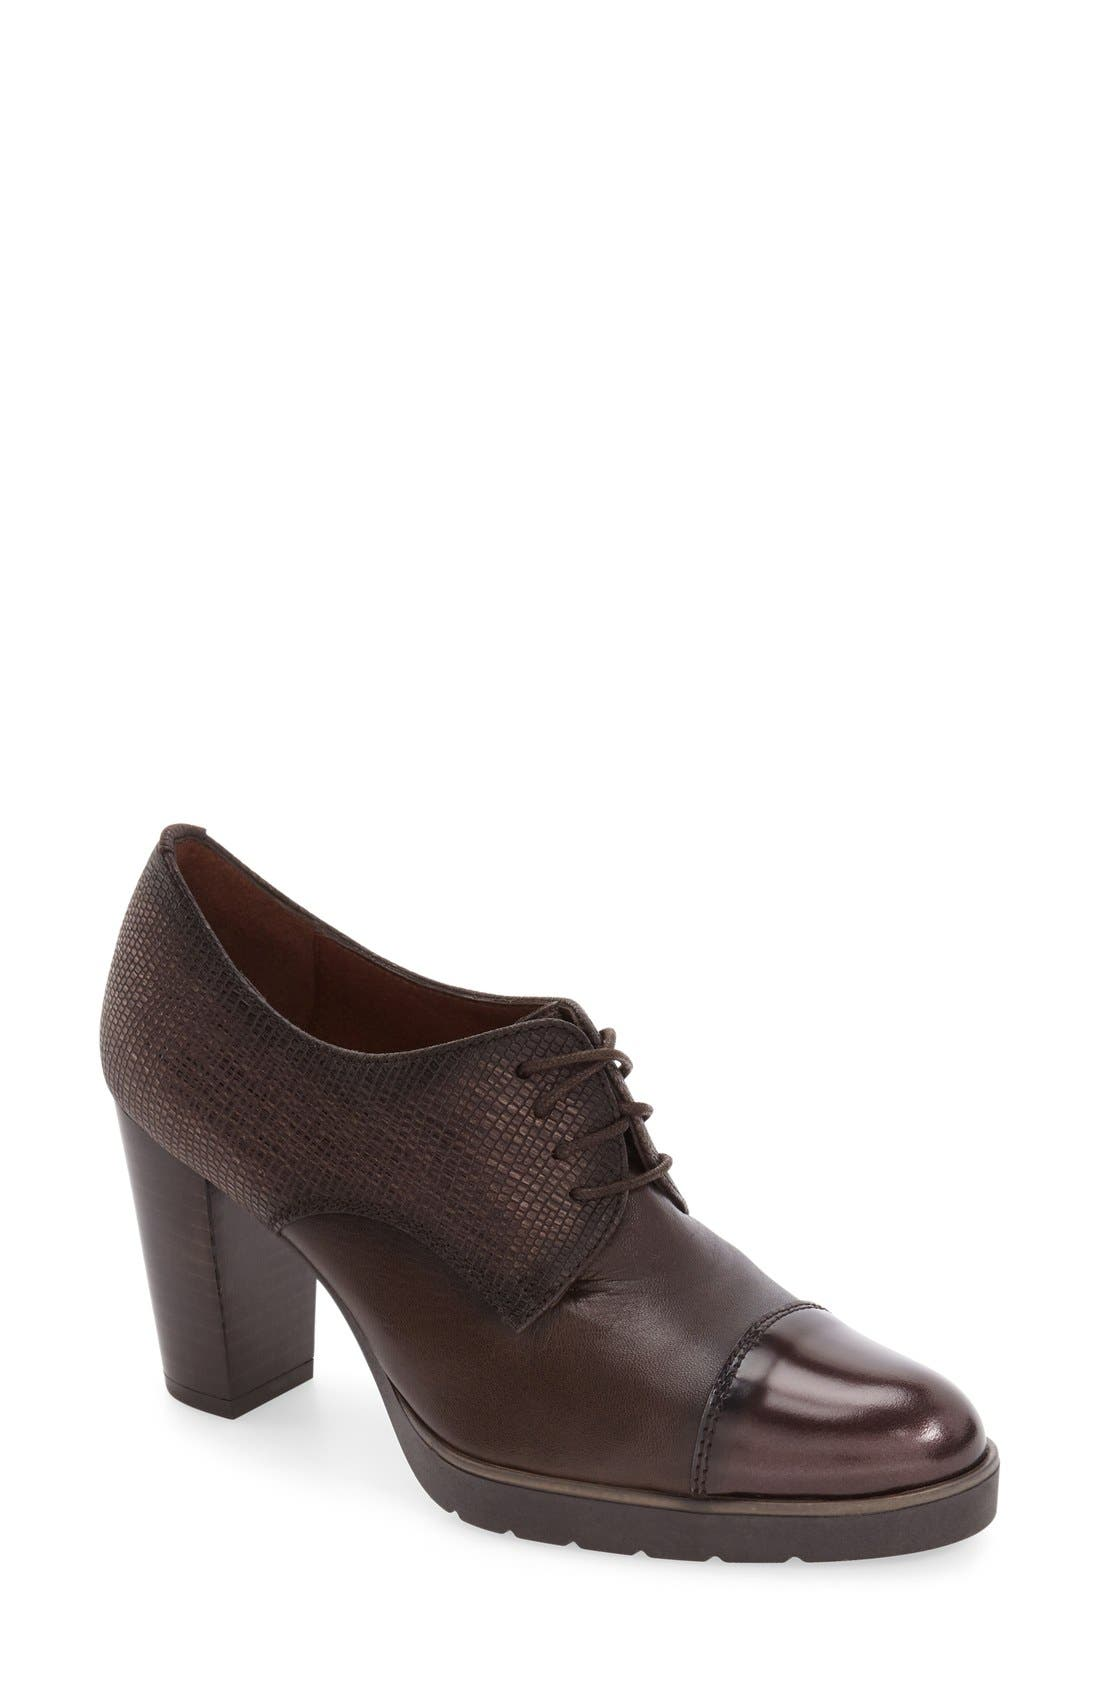 HISPANITAS 'Viv' Cap Toe Pump